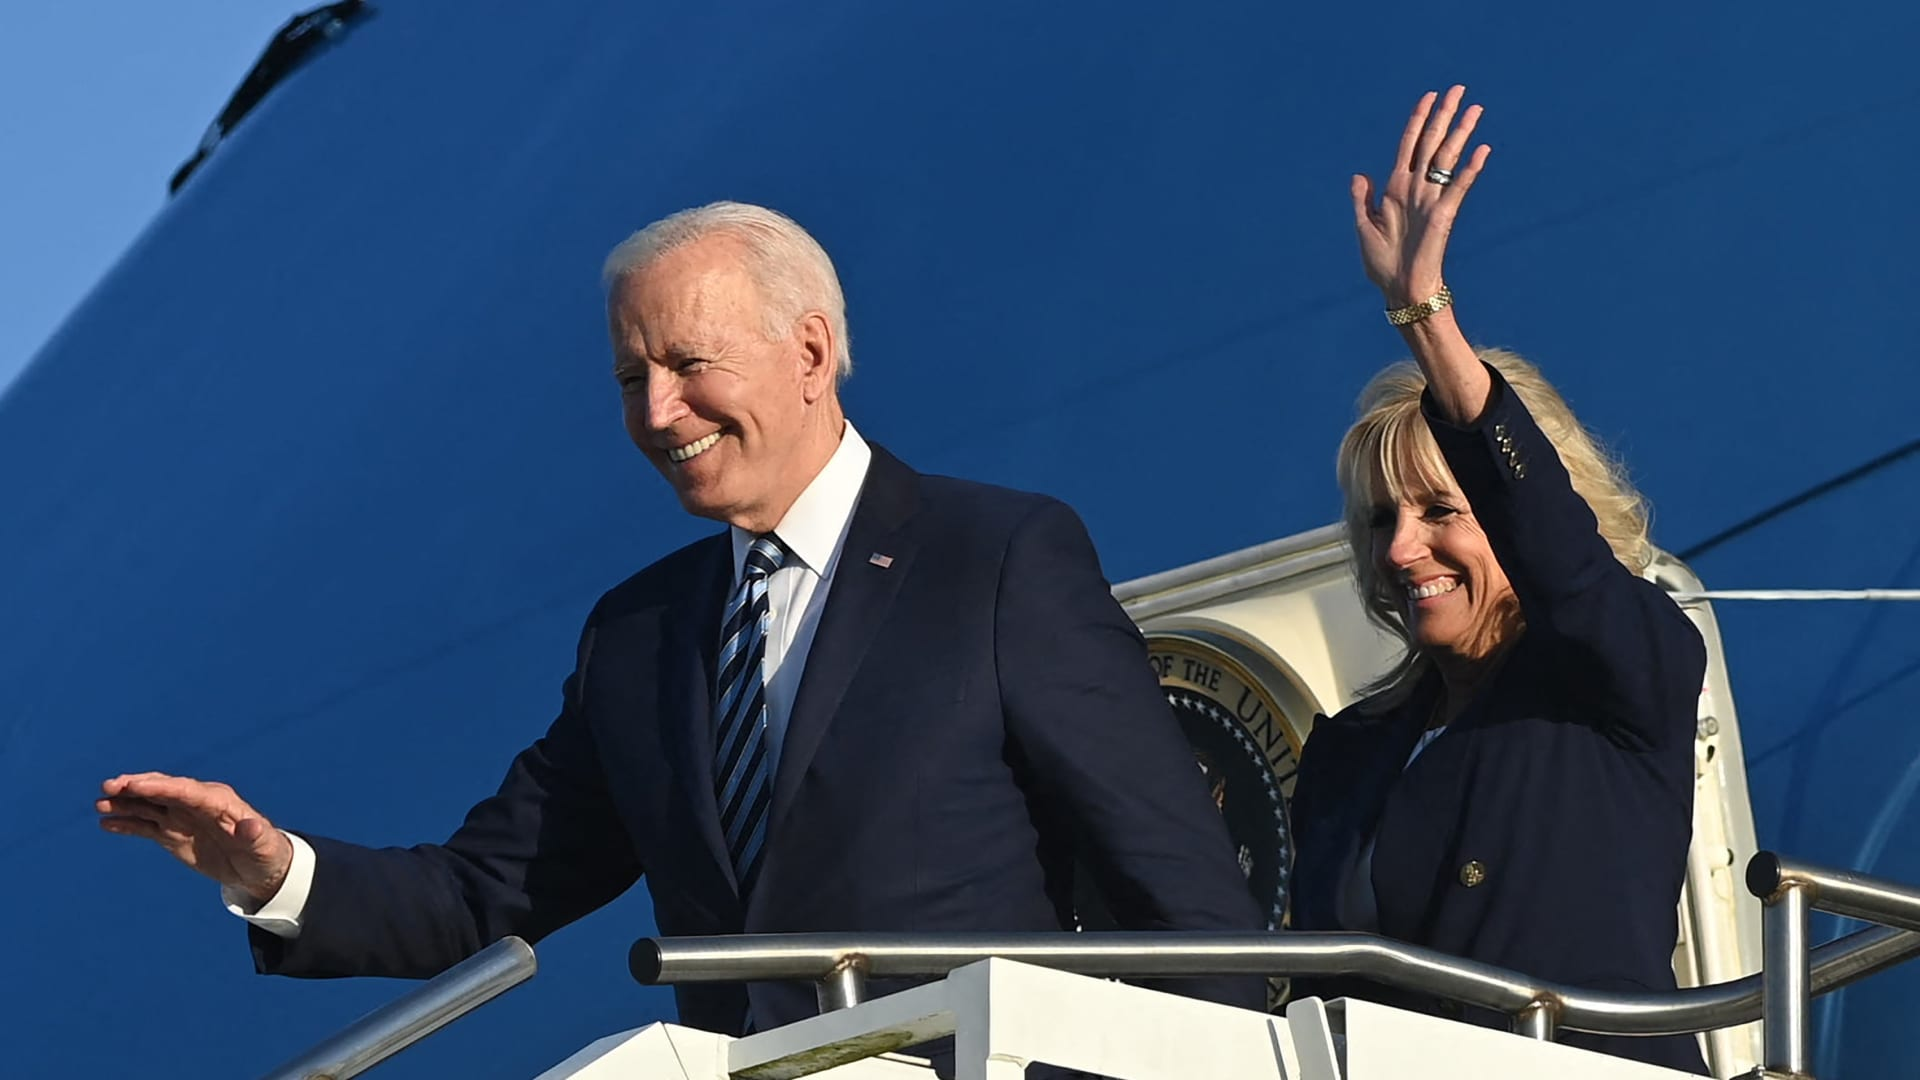 US President Joe Biden (L) and US First Lady Jill Biden disembark from Air Force One on their arrival at Royal Air Force Mildenhall, England on June 9, 2021, ahead of the three-day G-7 Summit.